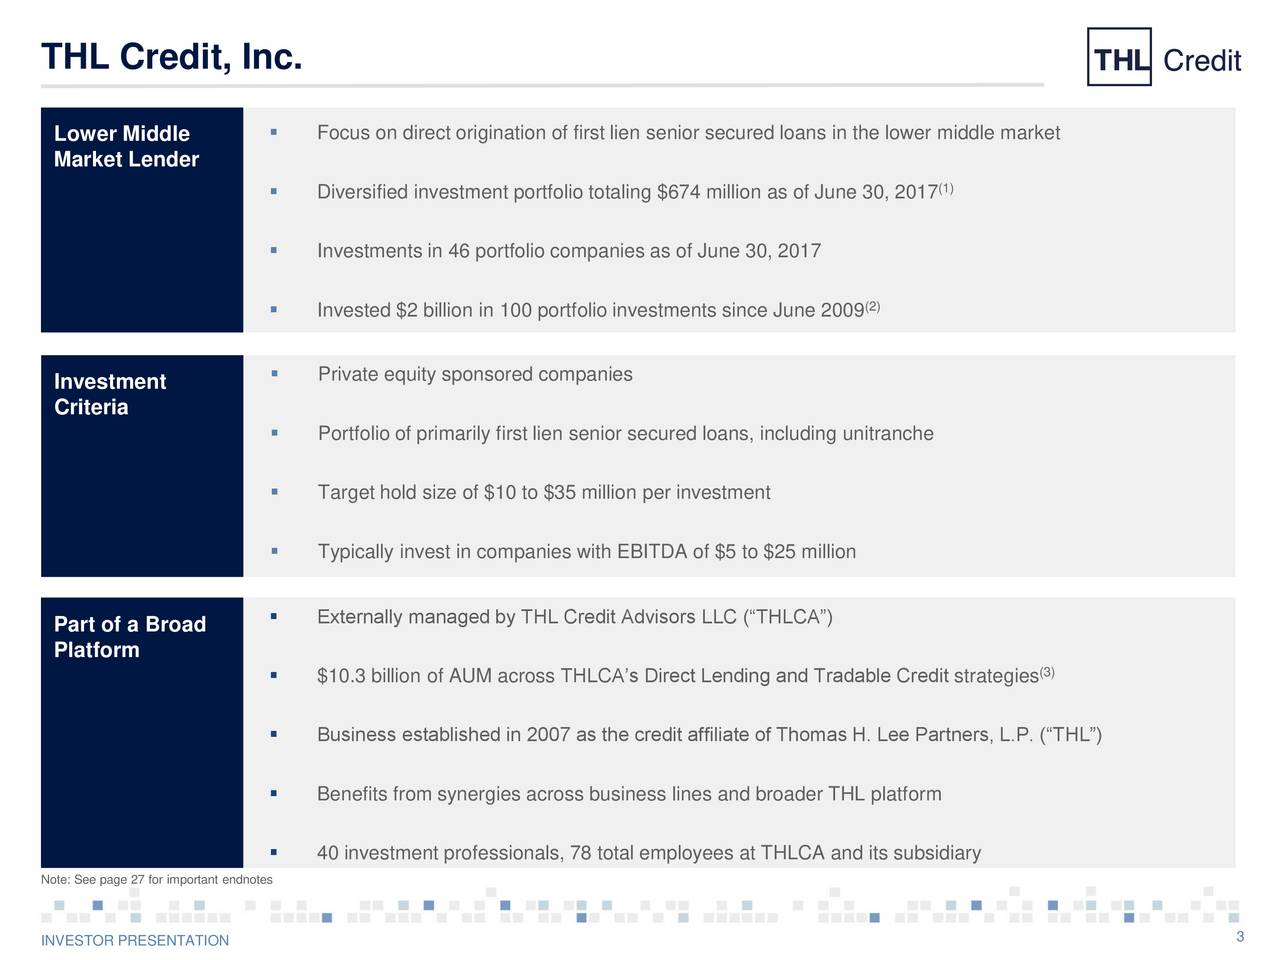 Lower Middle  Focus on direct origination of first lien senior secured loans in the lower middle market Market Lender Diversified investment portfolio totaling $674 million as of June 30, 20171) Investments in 46 portfolio companies as of June 30, 2017 Invested $2 billion in 100 portfolio investments since June 2009 (2) Investment  Private equity sponsored companies Criteria Portfolio of primarily first lien senior secured loans, including unitranche Target hold size of $10 to $35 million per investment Typically invest in companies with EBITDA of $5 to $25 million Externally managed by THL Credit Advisors LLC (THLCA) Part of a Broad Platform (3) $10.3 billion of AUM across THLCAs Direct Lending and Tradable Credit strategies Business established in 2007 as the credit affiliate of Thomas H. Lee Partners, L.P. (THL) Benefits from synergies across business lines and broader THL platform 40 investment professionals, 78 total employees at THLCA and its subsidiary Note: See page 27 for important endnotes INVESTOR PRESENTATION 3